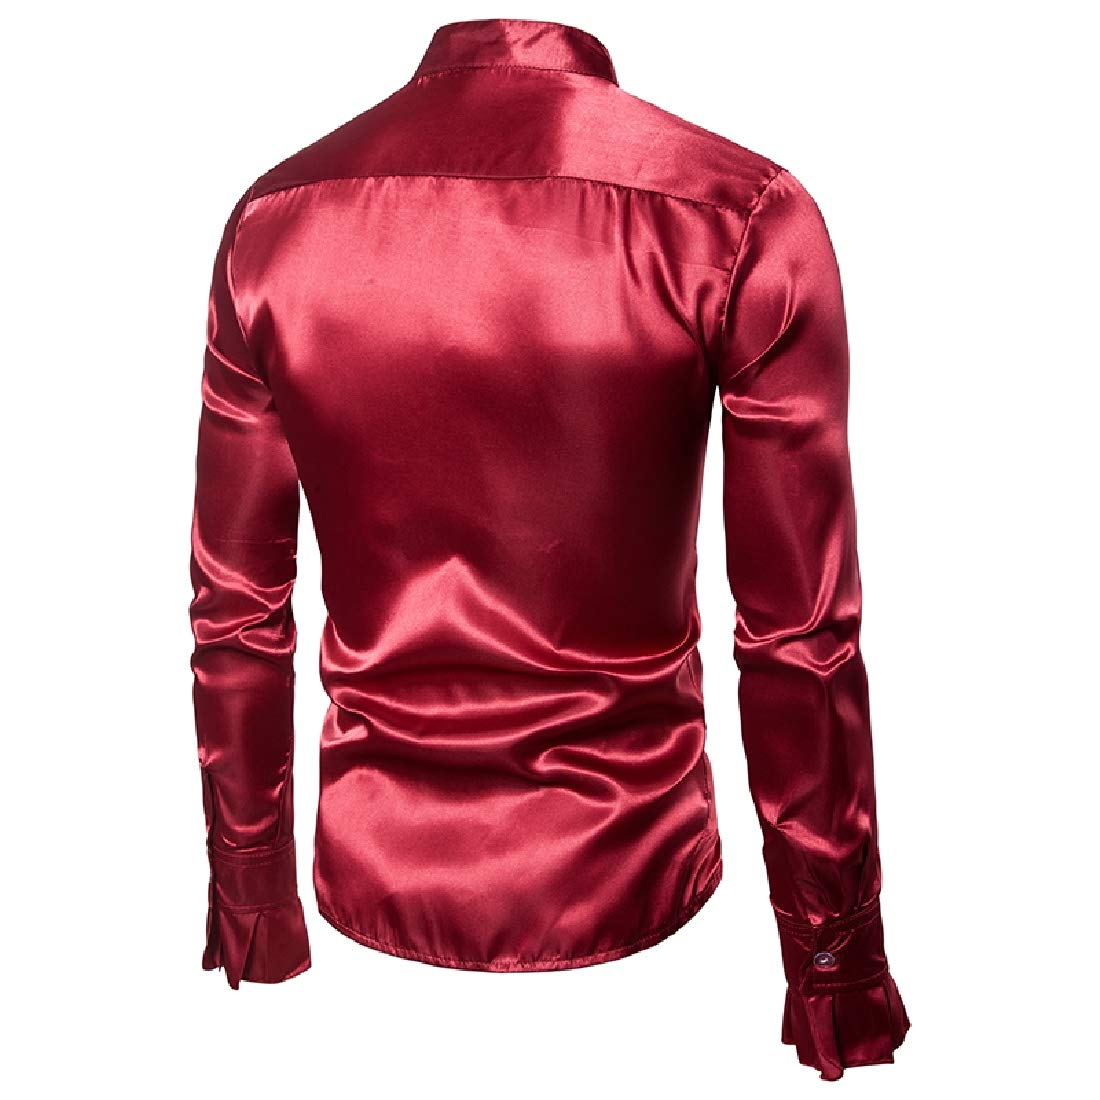 YUNY Mens Fashion Party Slim Fitted Button Down Stage Dress Shirts Wine Red XL